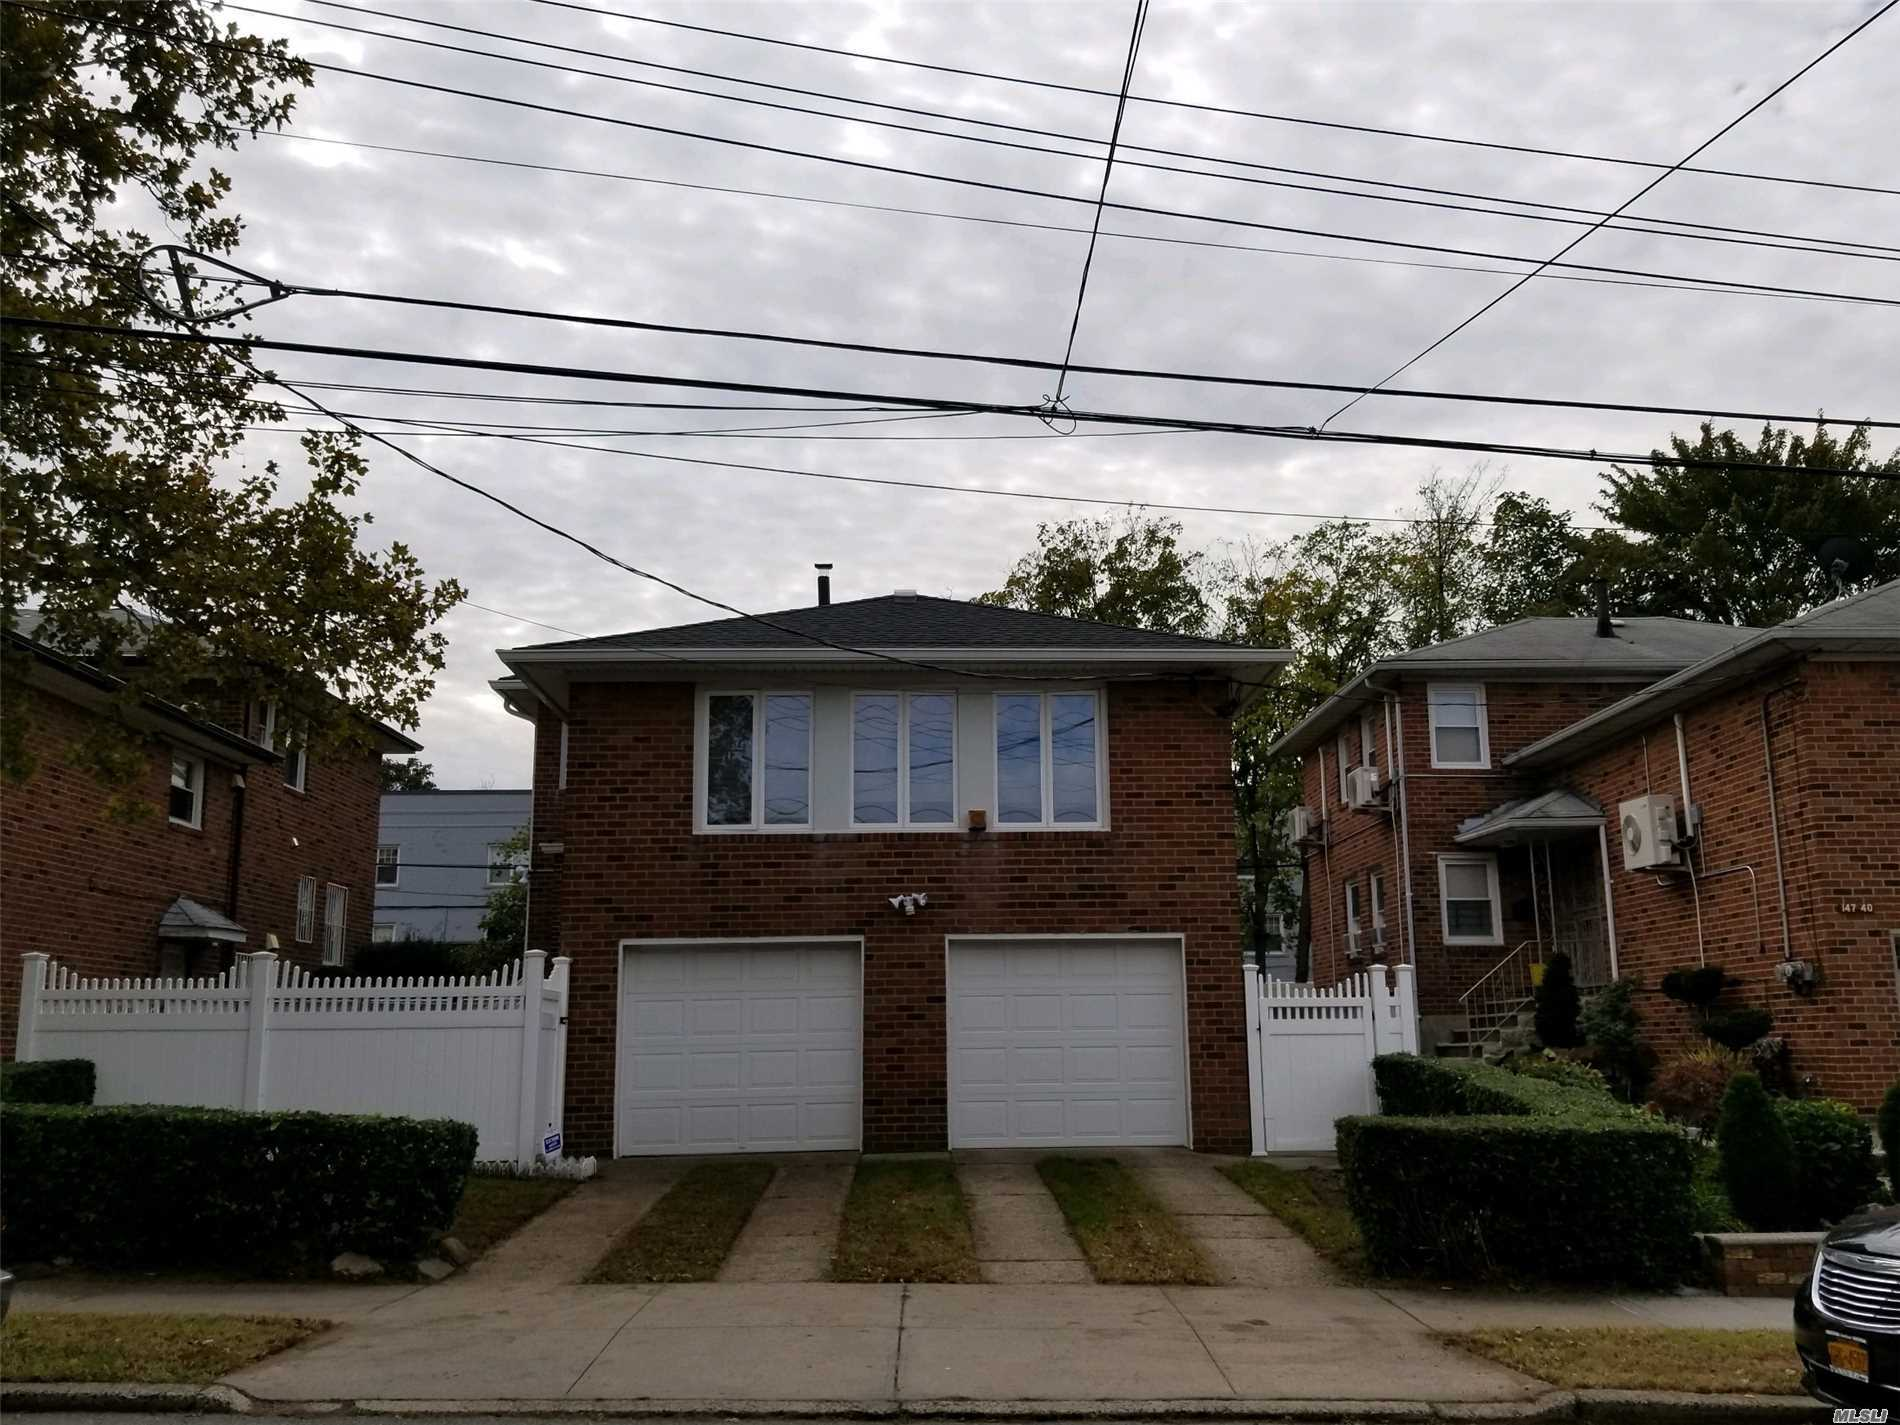 Rare Find In The Heart Of Flushing. Close To All Transportation And Shopping.Unique 2 Family Solid Brick 2 Family Split Duplex. 1st Flr Is A Duplex W/Lg. Eat In Kitchen On The First Level And 2nd Level Has A Full Bath, Bedroom And Living Rm. Owners Apartment Has 3 Bedrooms, 2 Full Baths, Formal Dining Rm., Lg Eat In Kitchen..Fully Functional Basement W Sep. Ent.